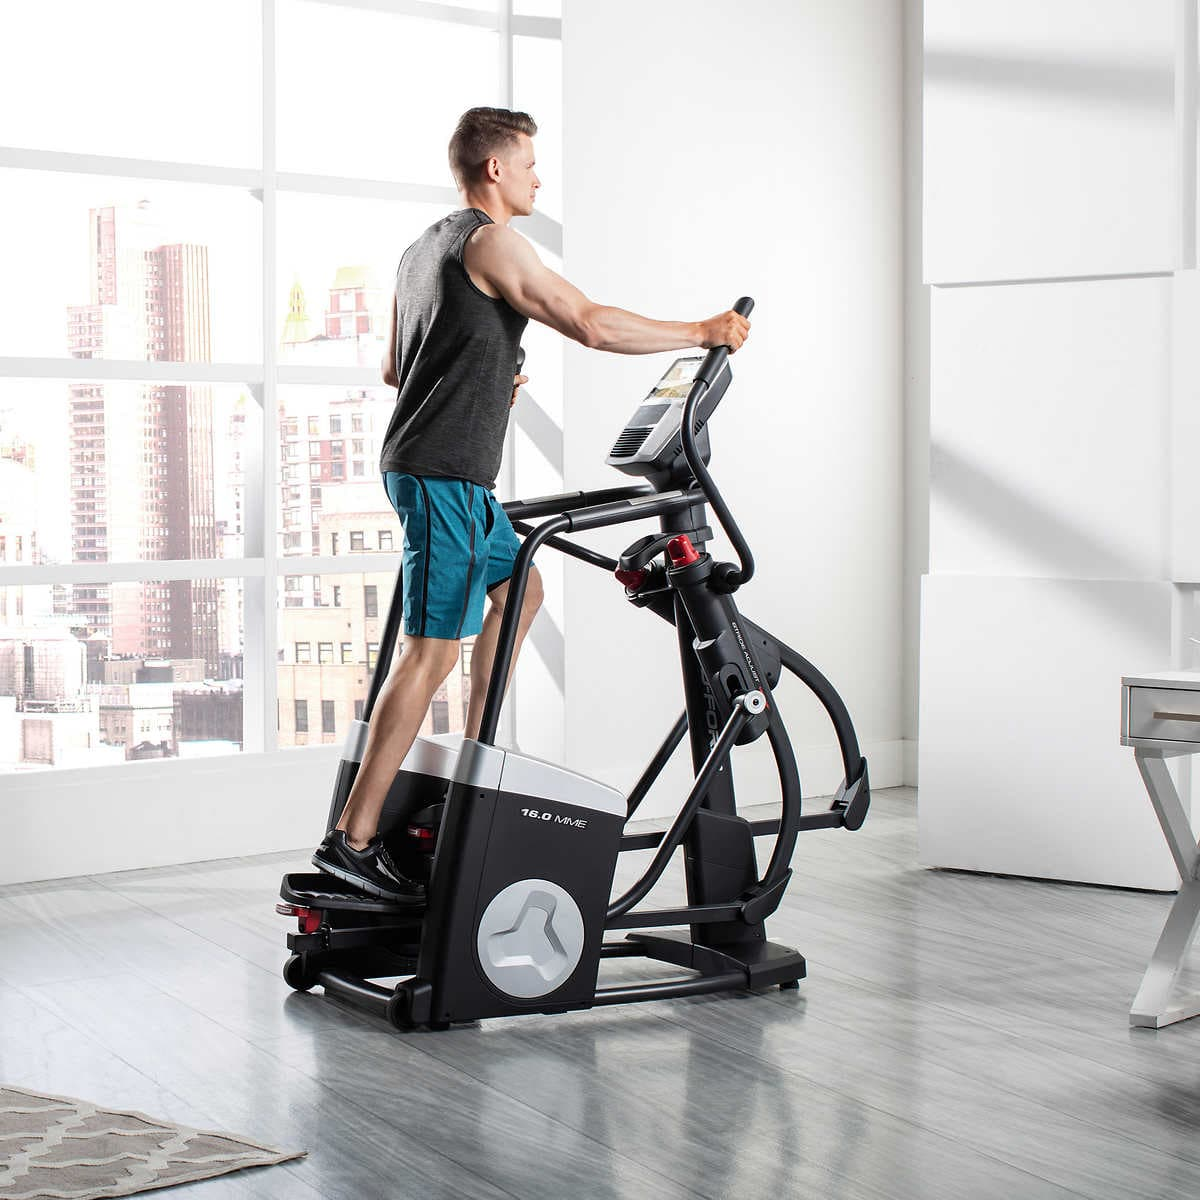 ProForm 16.0 MME Elliptical $699.99